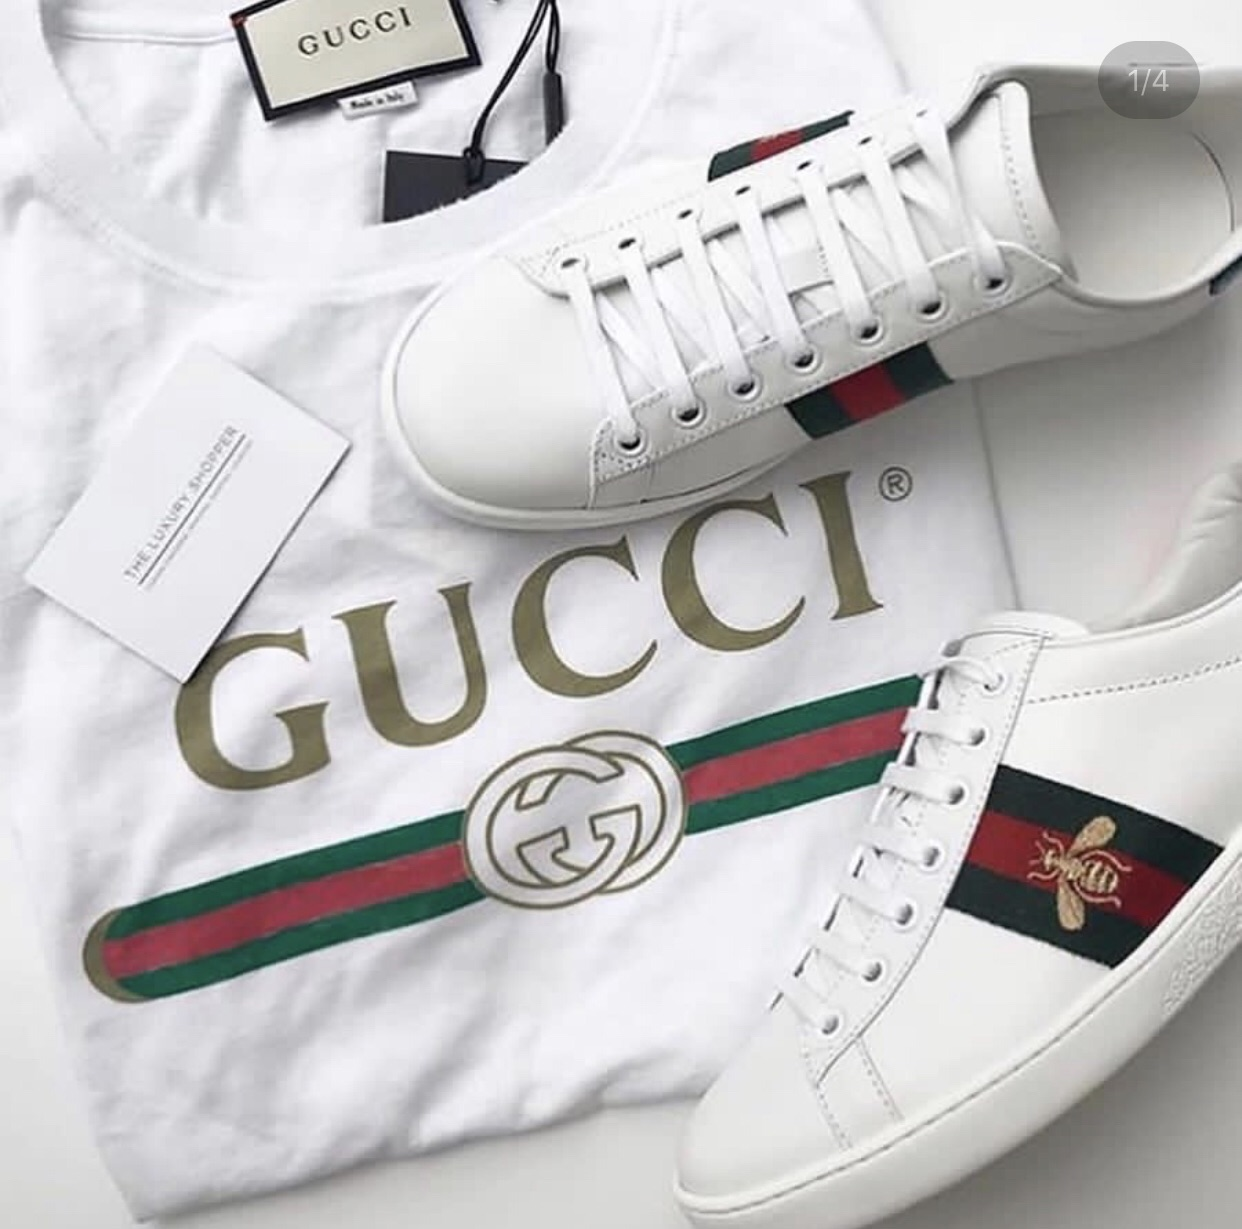 gucci clothes, gucci outfit, fashion and goals